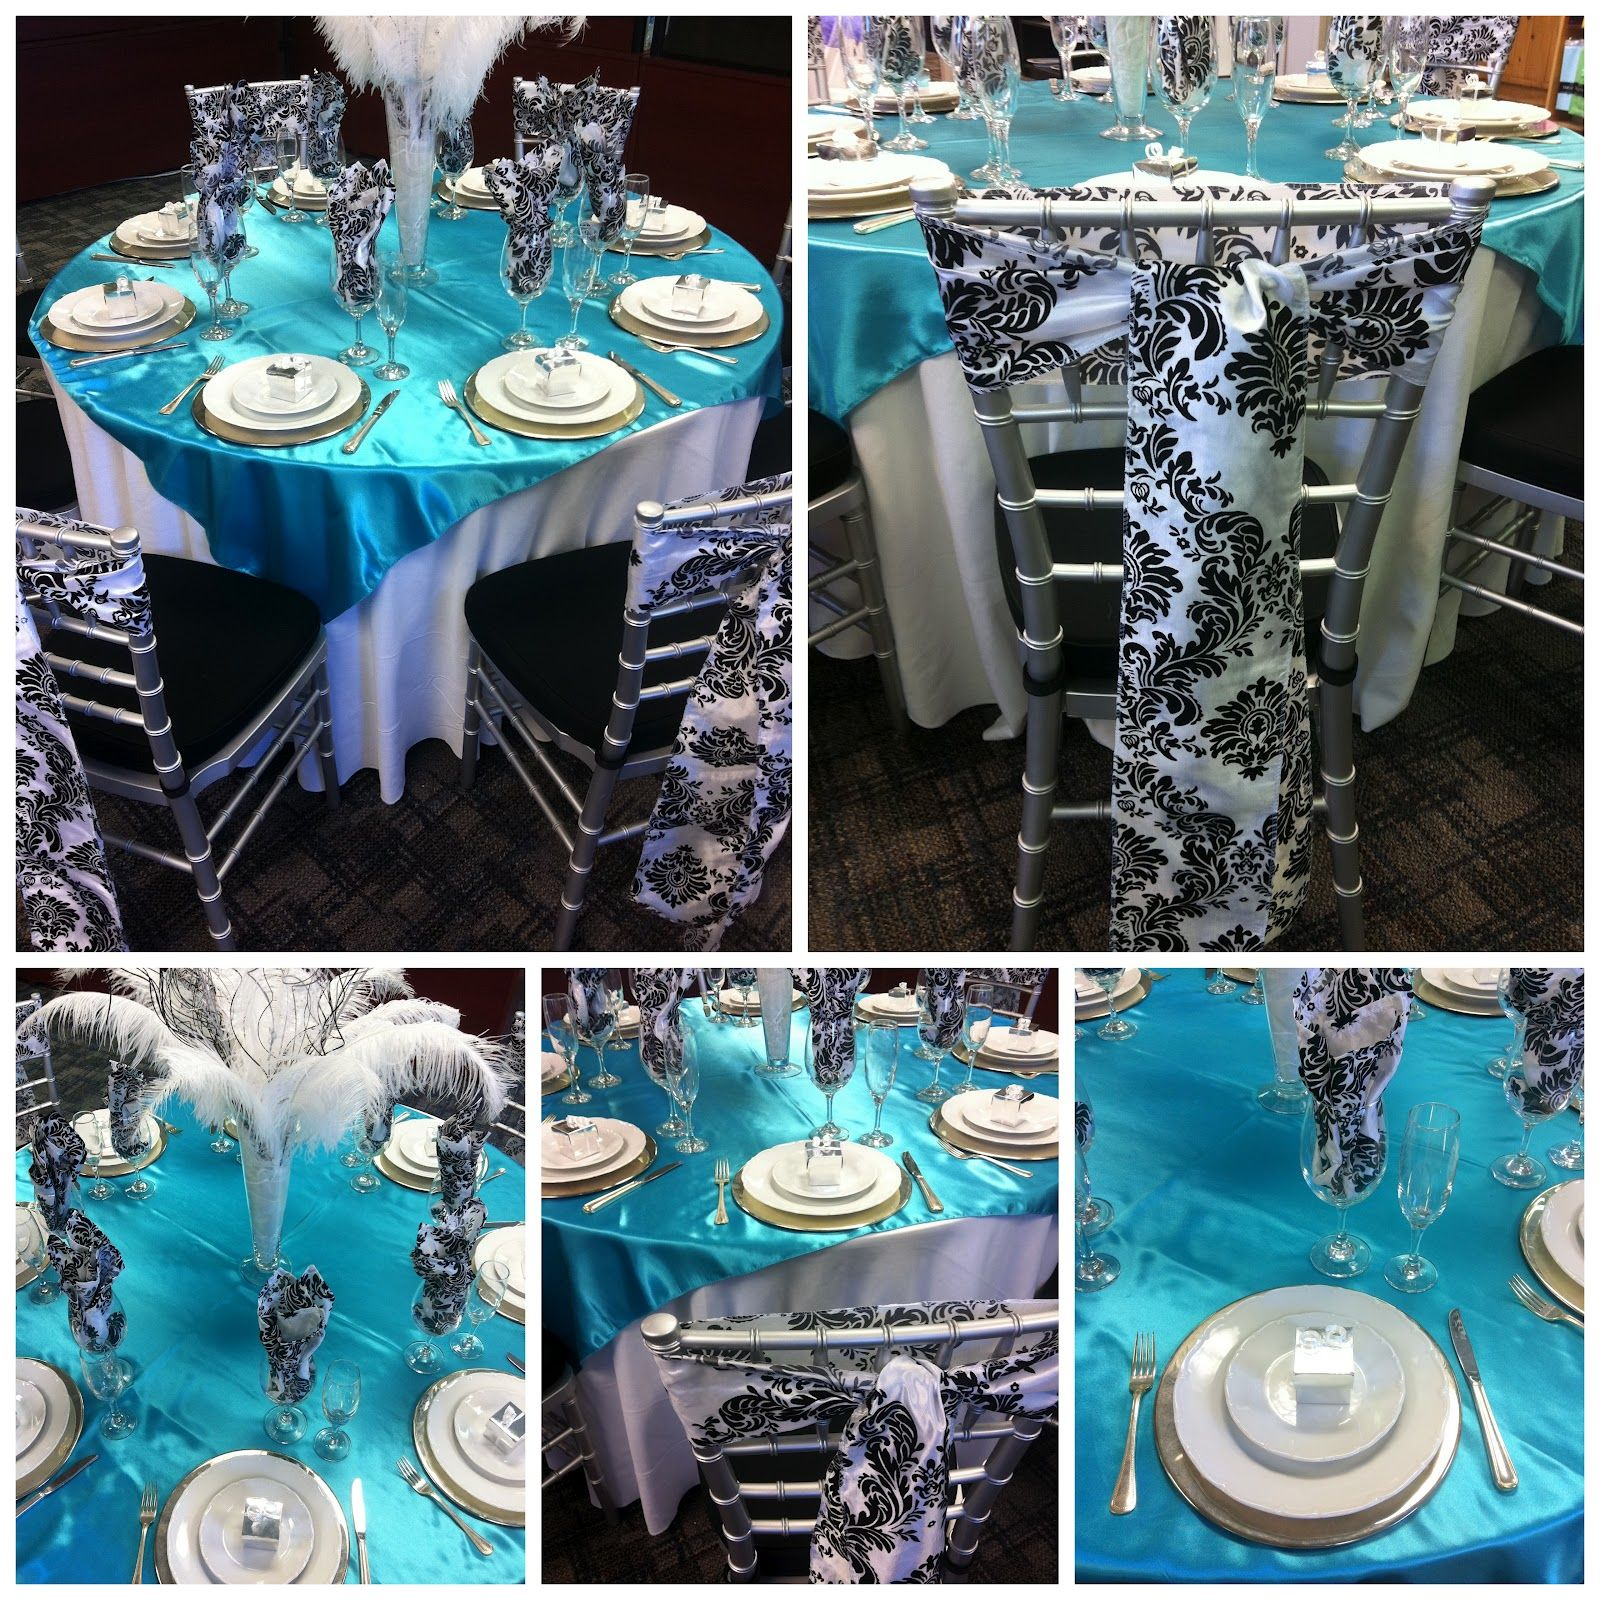 Blue And Black Wedding Ideas: Party Decorations For A Banquet With Turquoise Black And